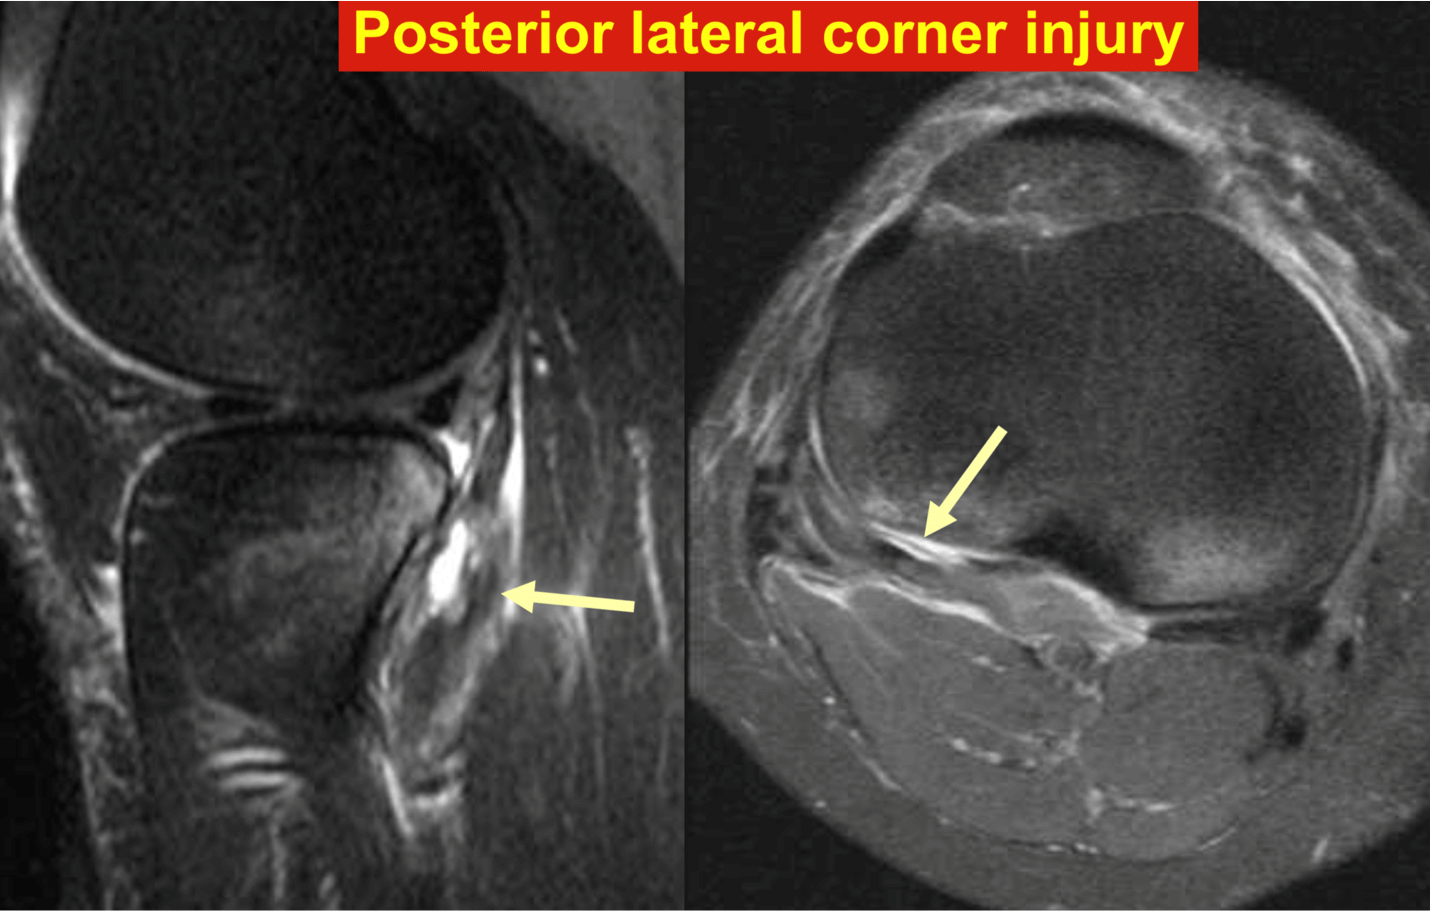 Posterior lateral corner injury